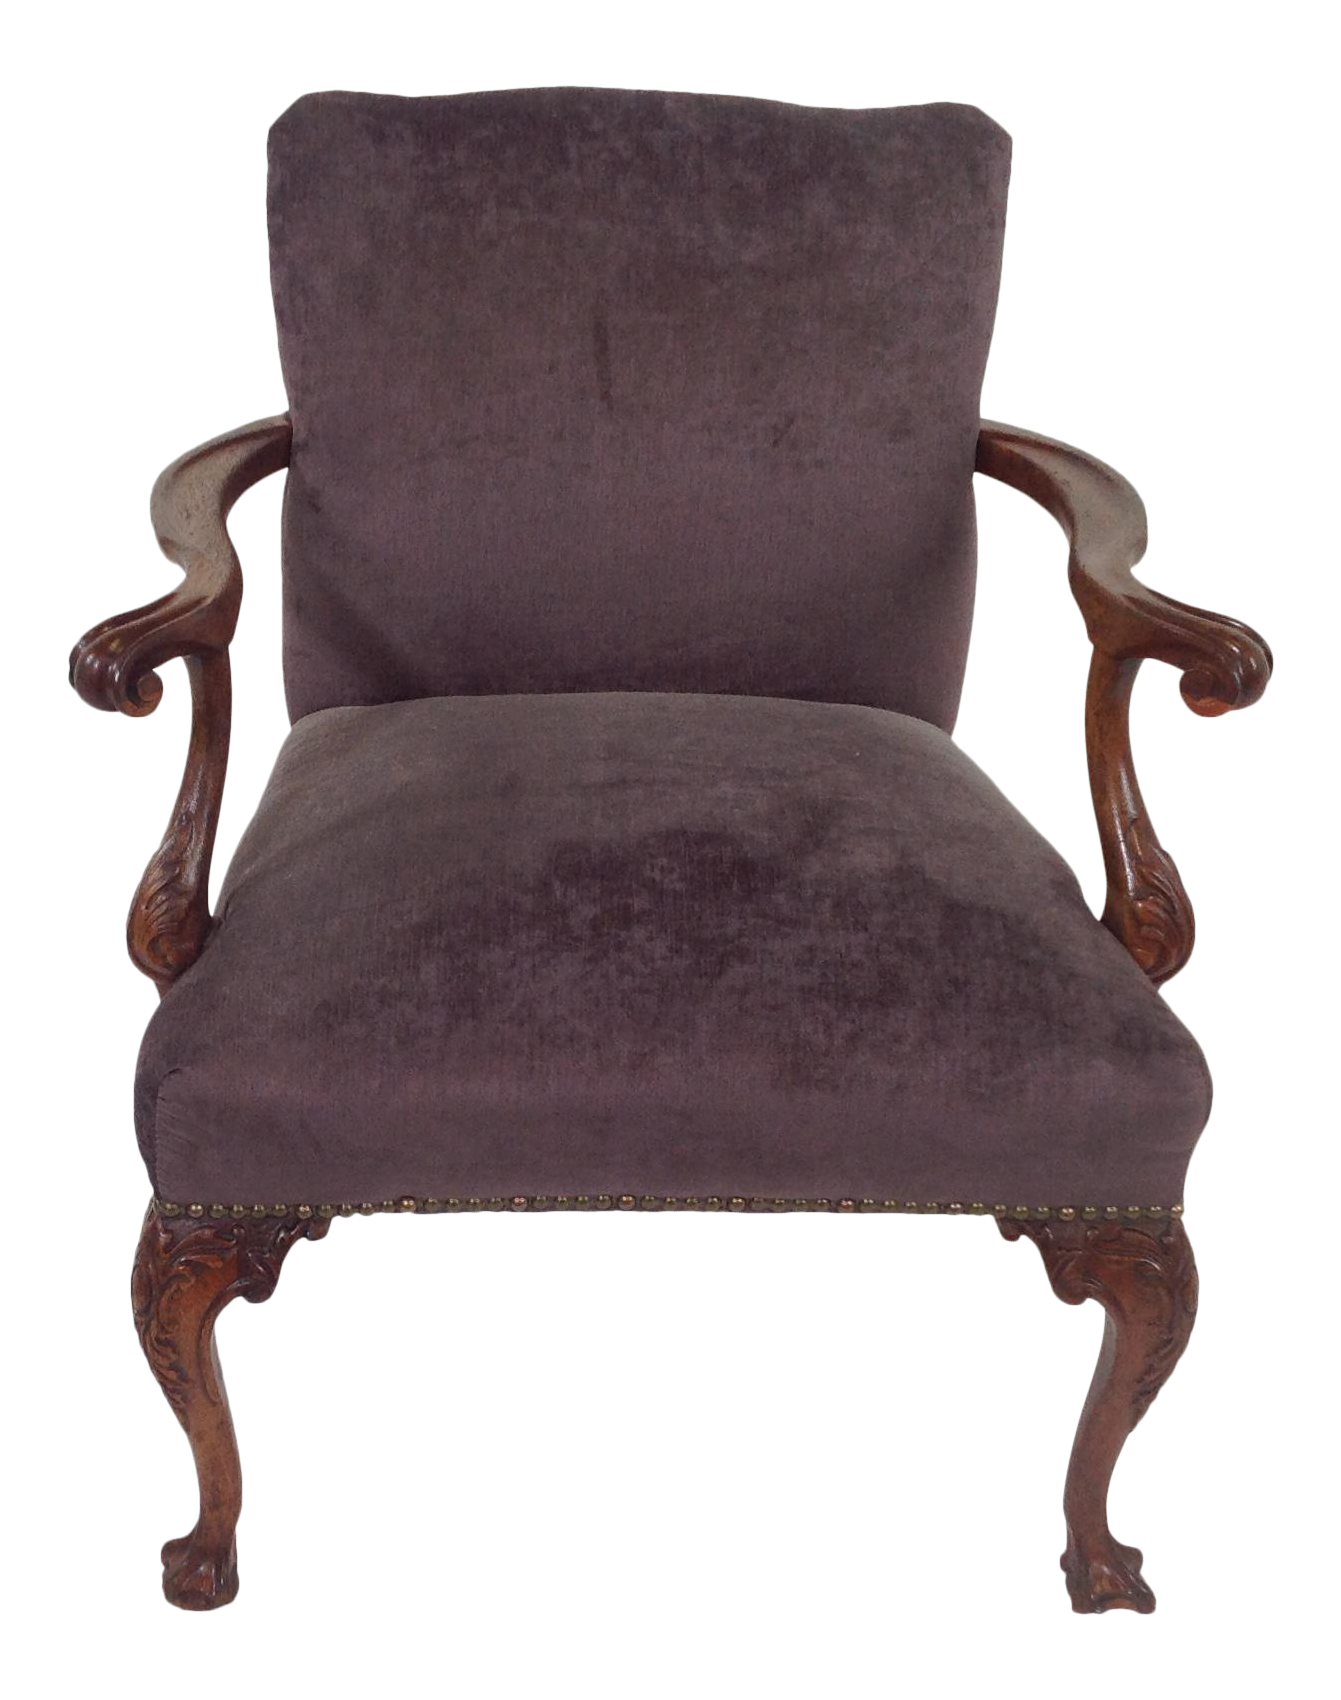 Antique purple velvet claw foot chair chairish